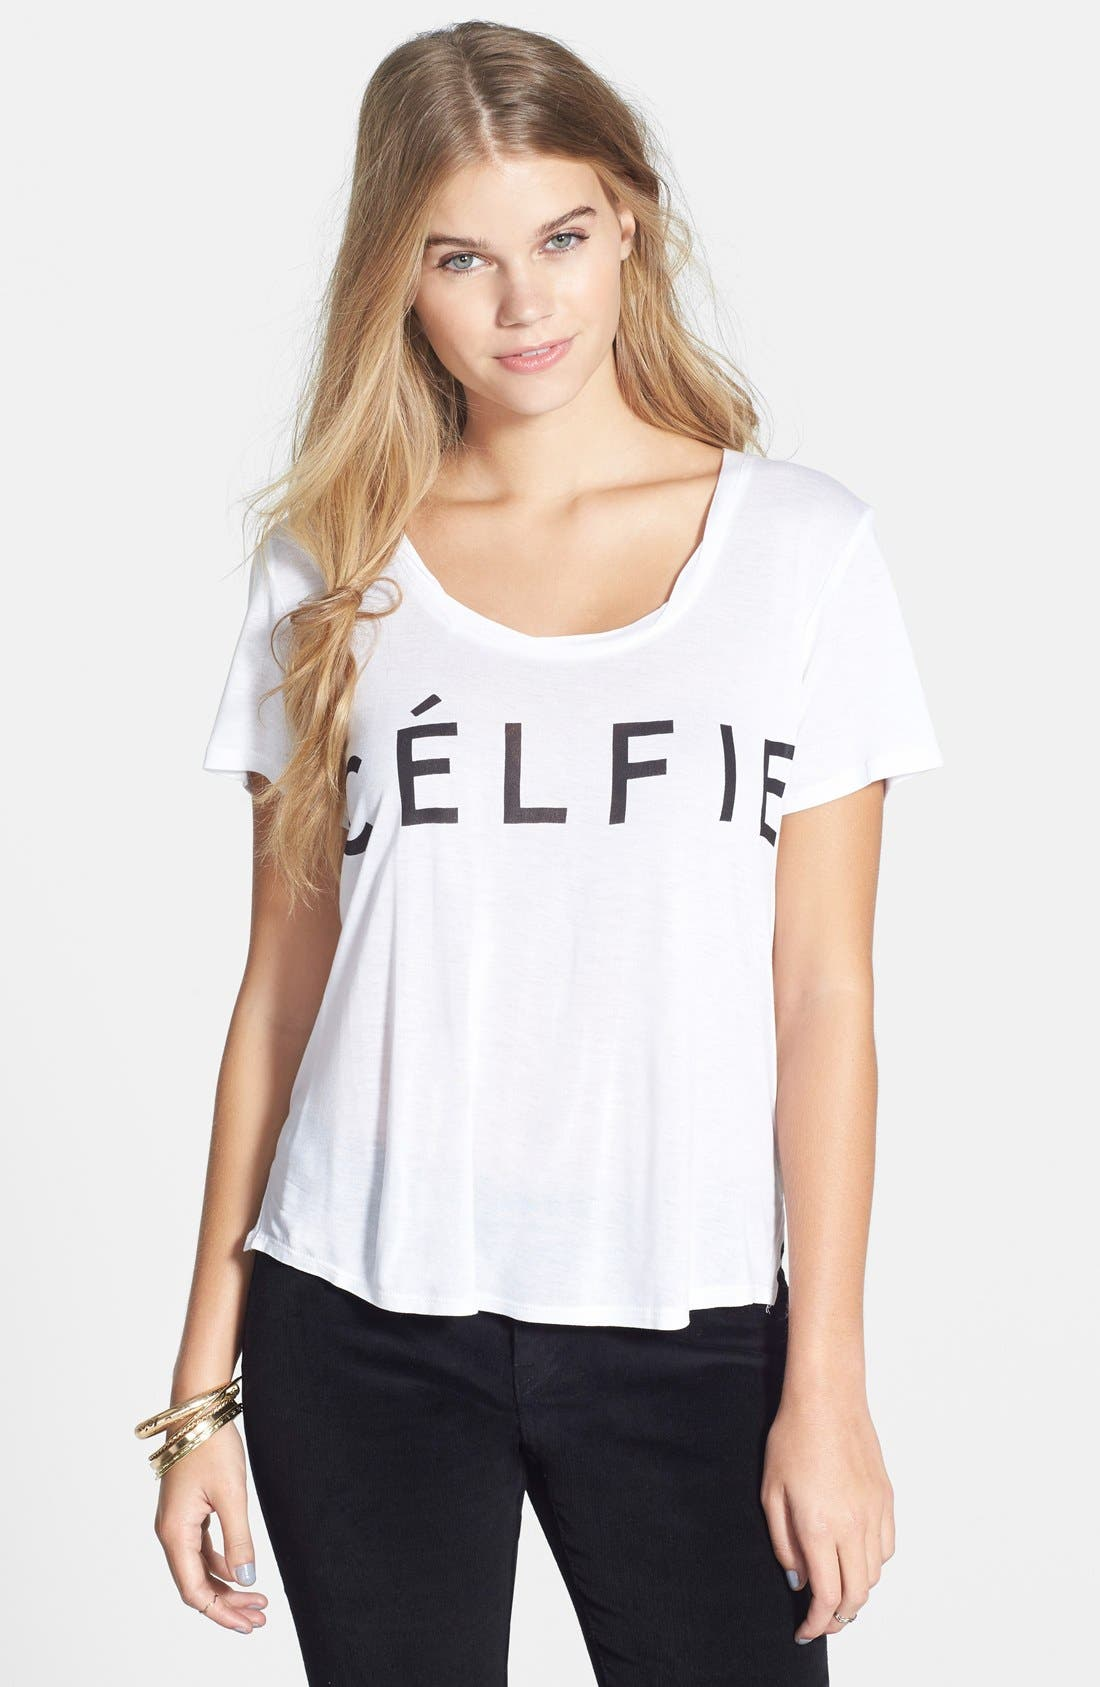 'Célfie' Graphic Tee,                             Main thumbnail 1, color,                             White